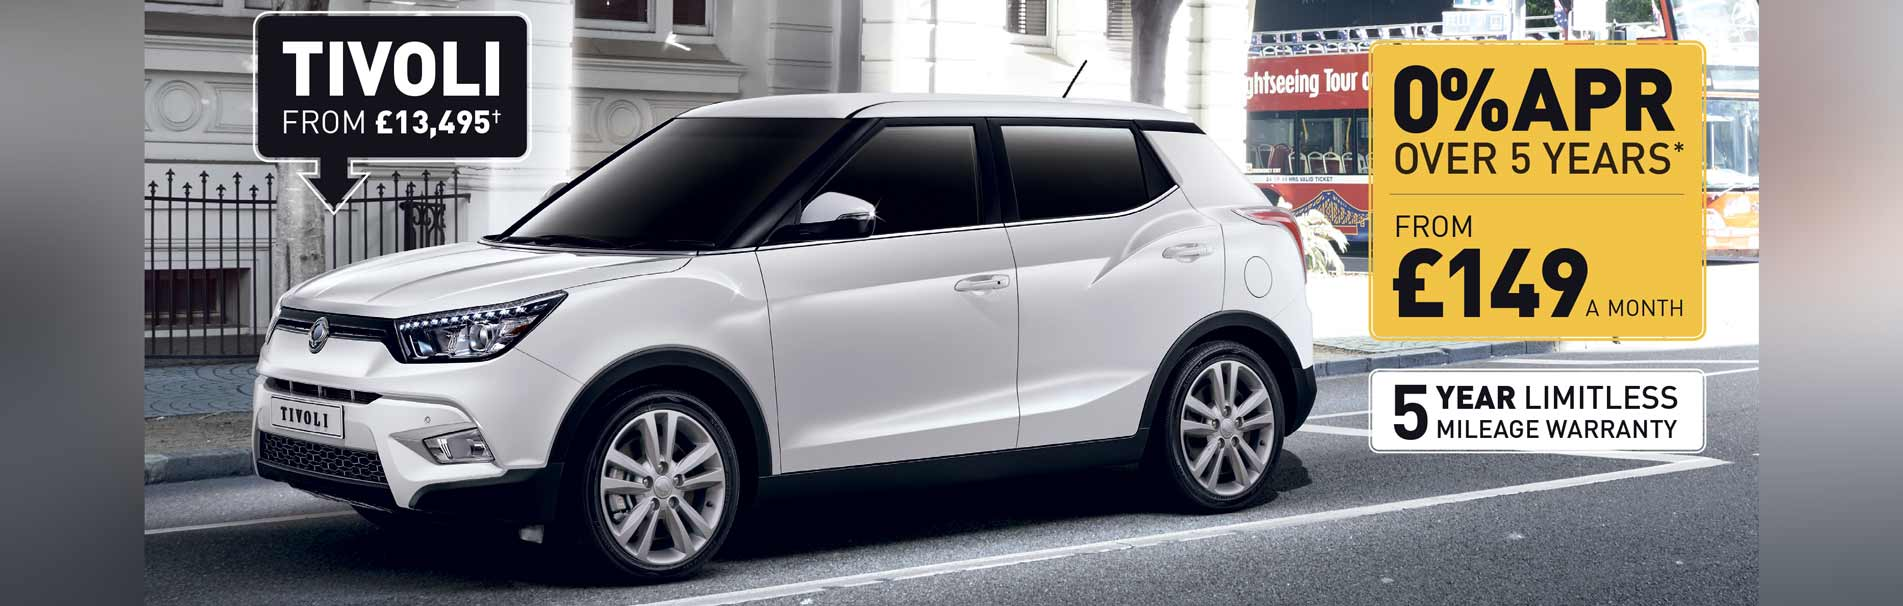 ssangyong-tivoli-5-years-zero-percent-apr-sli